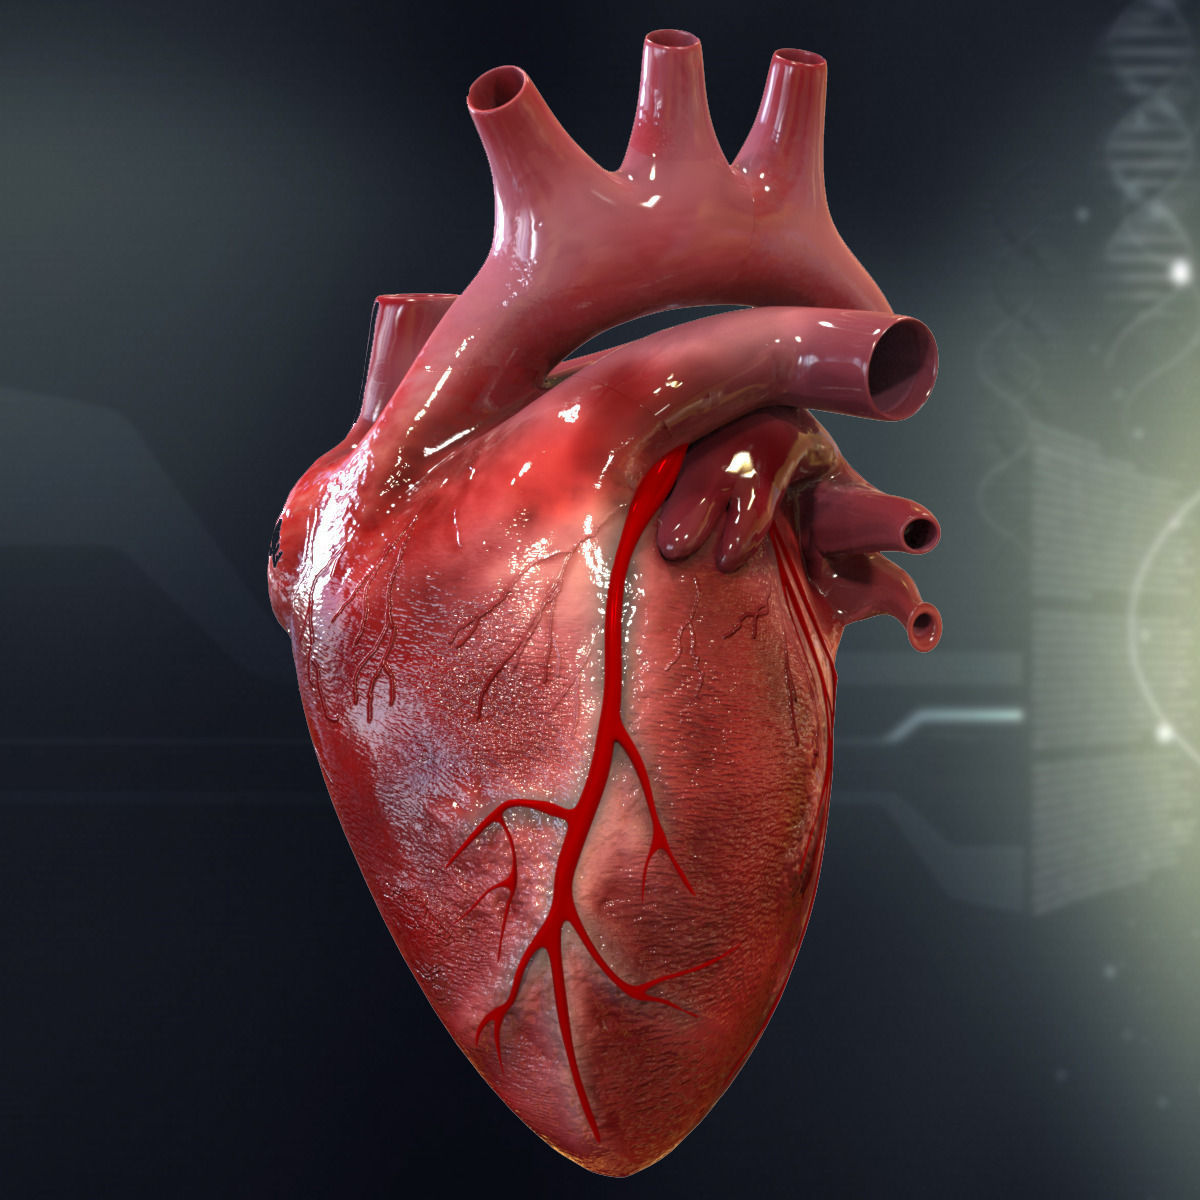 Human Heart Cutaway Anatomy 3D model section | CGTrader